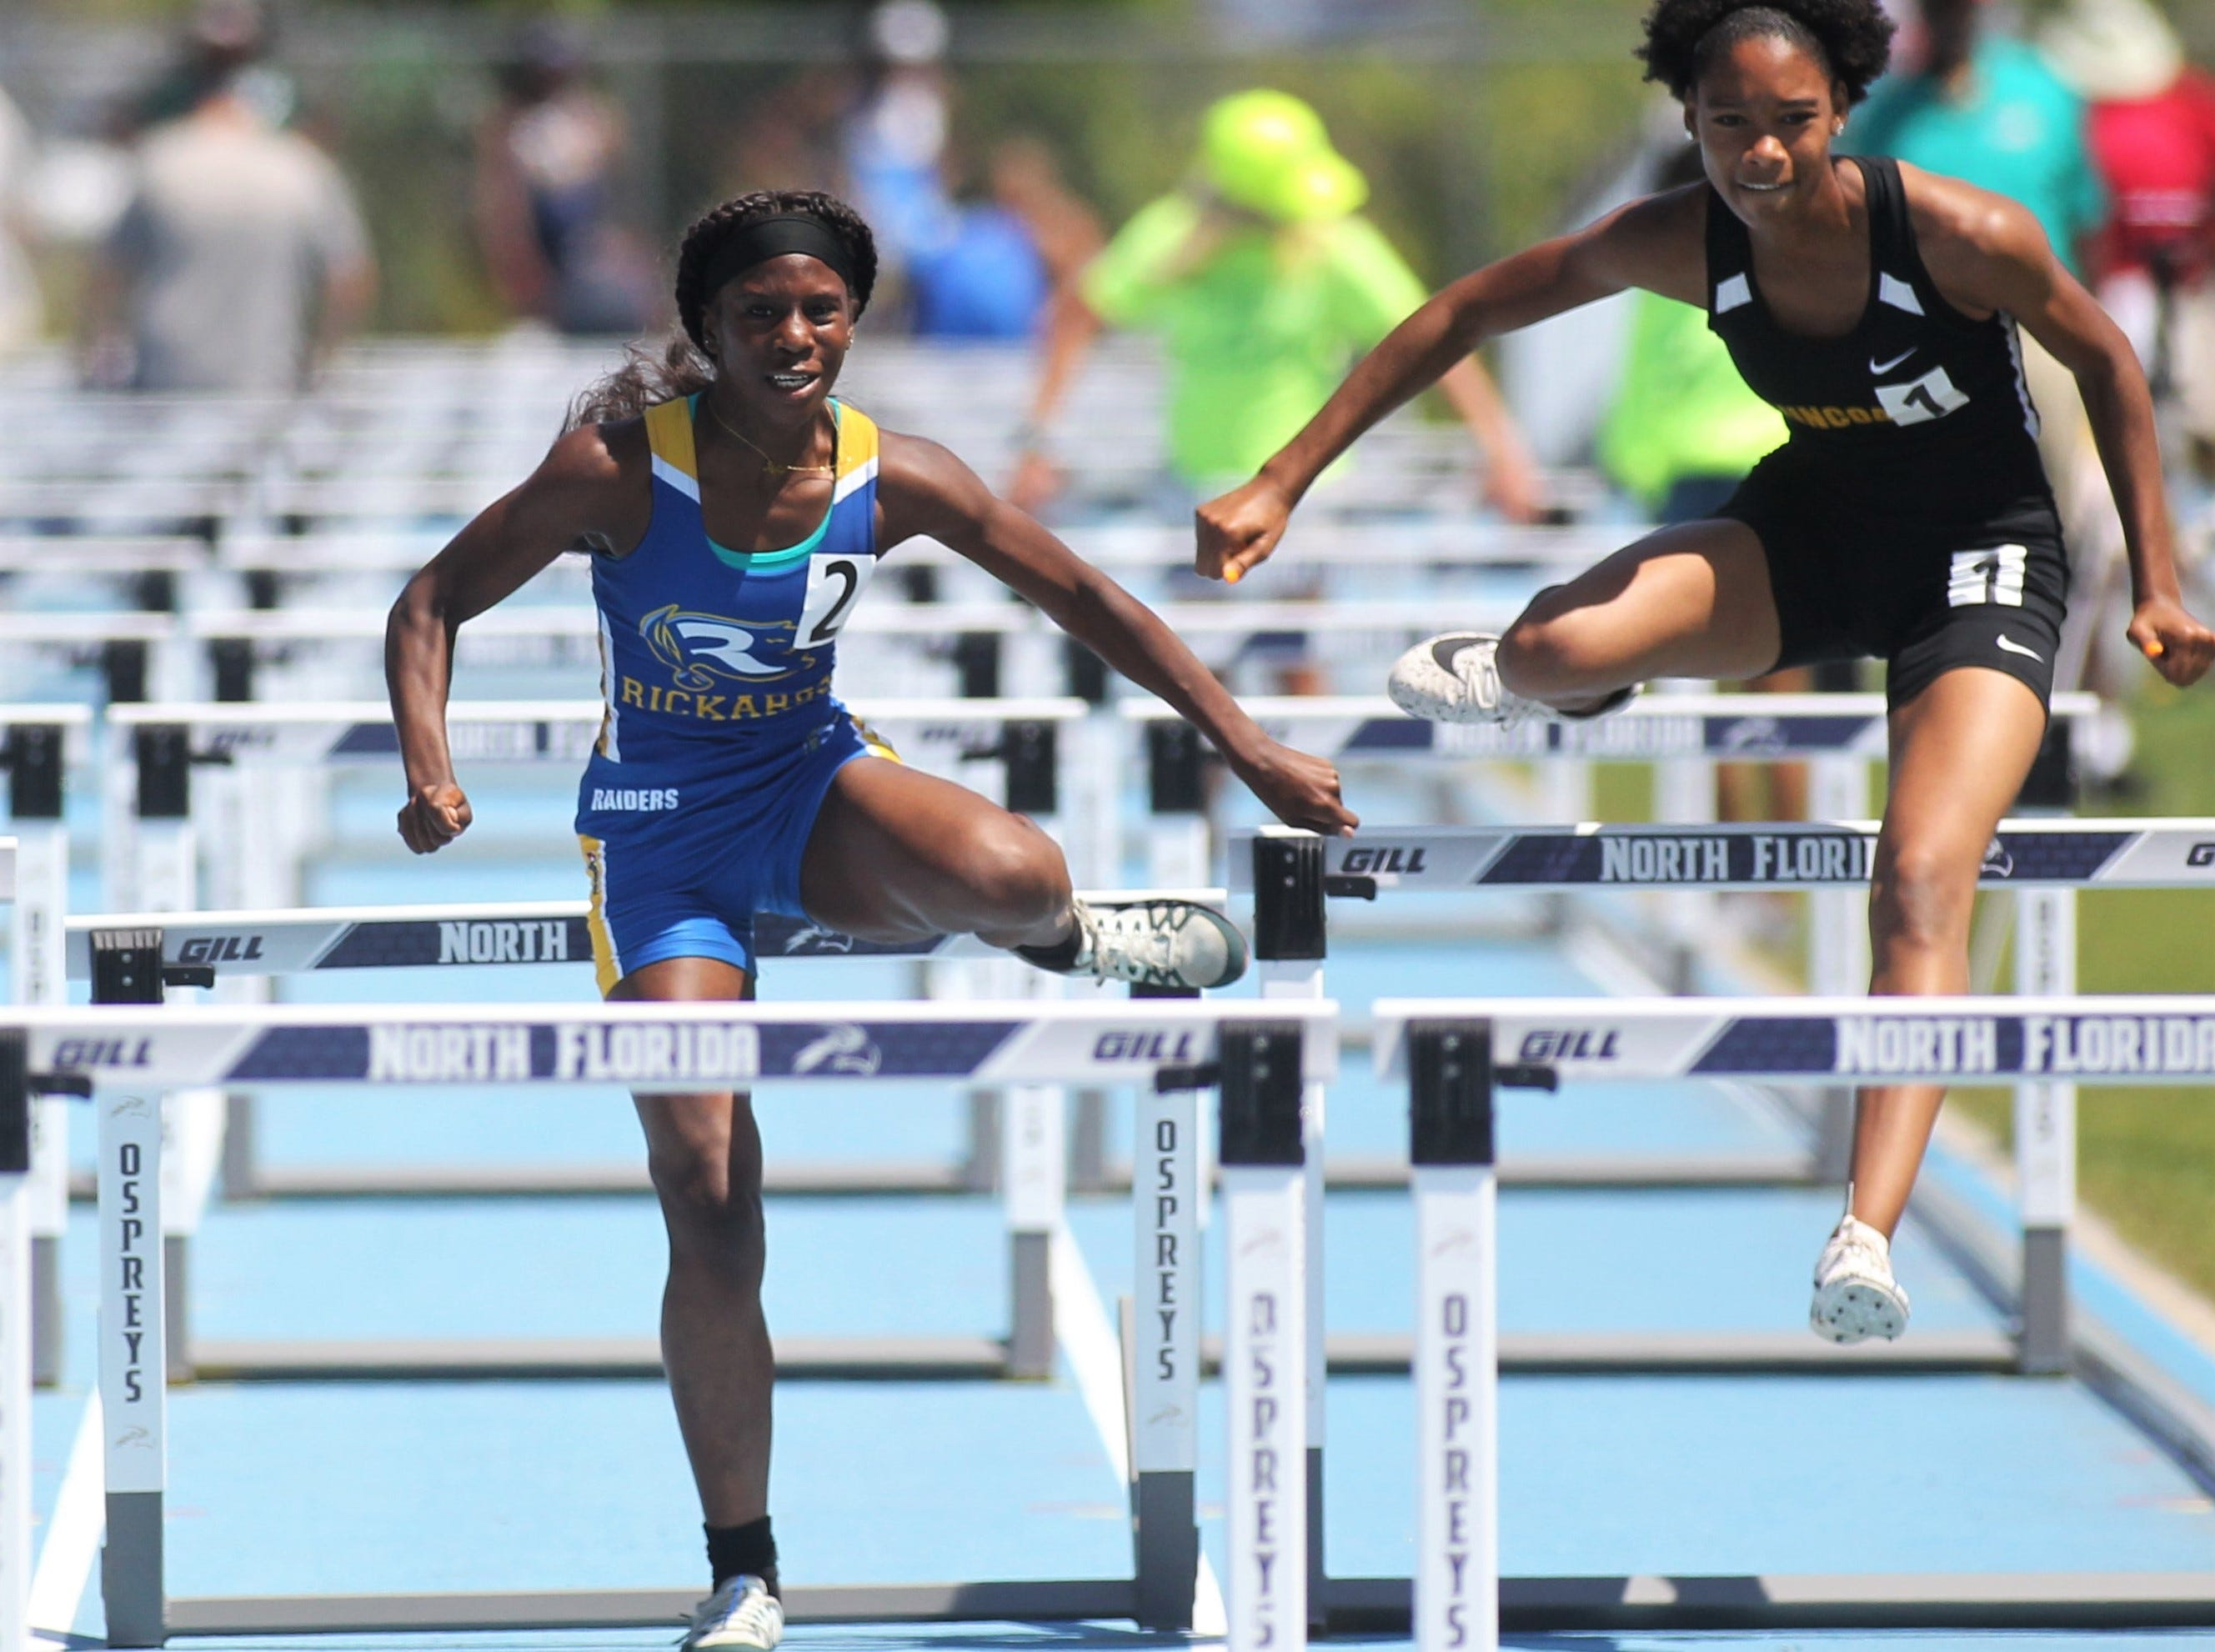 Rickards' Jakell Williams runs the 100m hurdles finals at the FHSAA Track and Field State Championships at UNF's Hodges Stadium in Jacksonville on May 4, 2019.